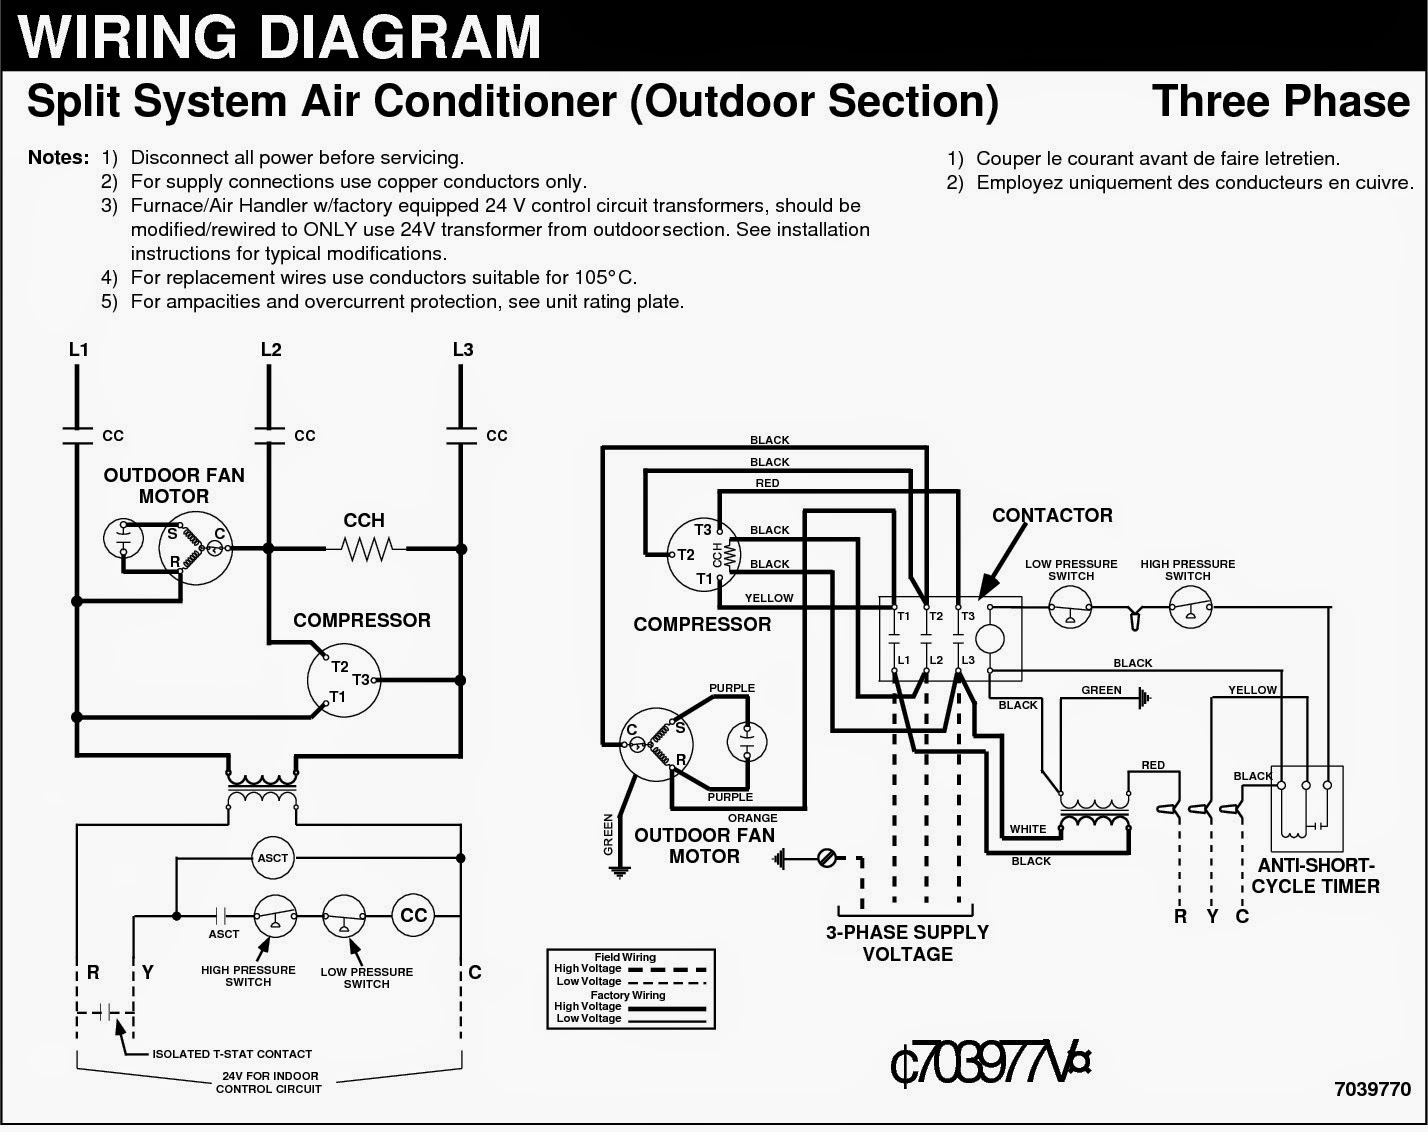 Air Cooler Wiring Diagram Accessories Wiring Diagram Wiring – Lg Heat Pump Wiring Diagram